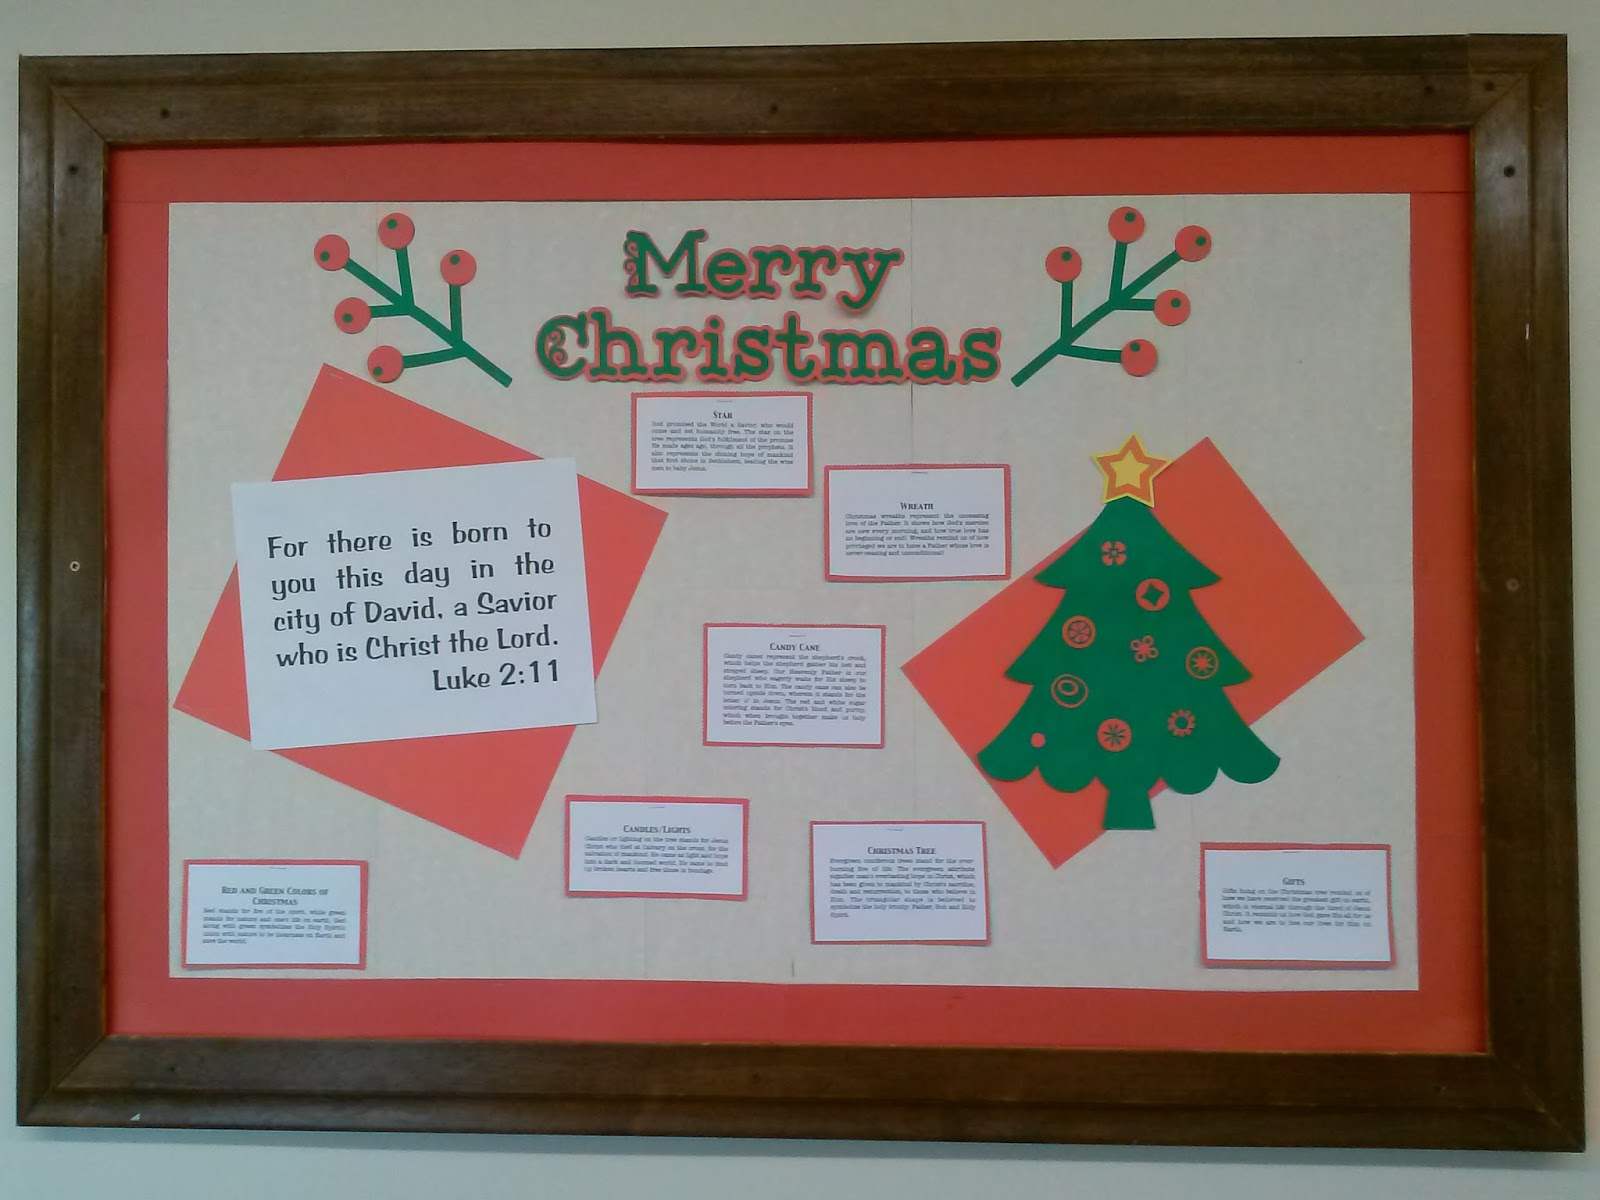 Just ask alice bulletin boards for christmas i wanted to put the bible verse in navajo again but i also wanted to add the meaning of christmas symbols from a christian perspective and biocorpaavc